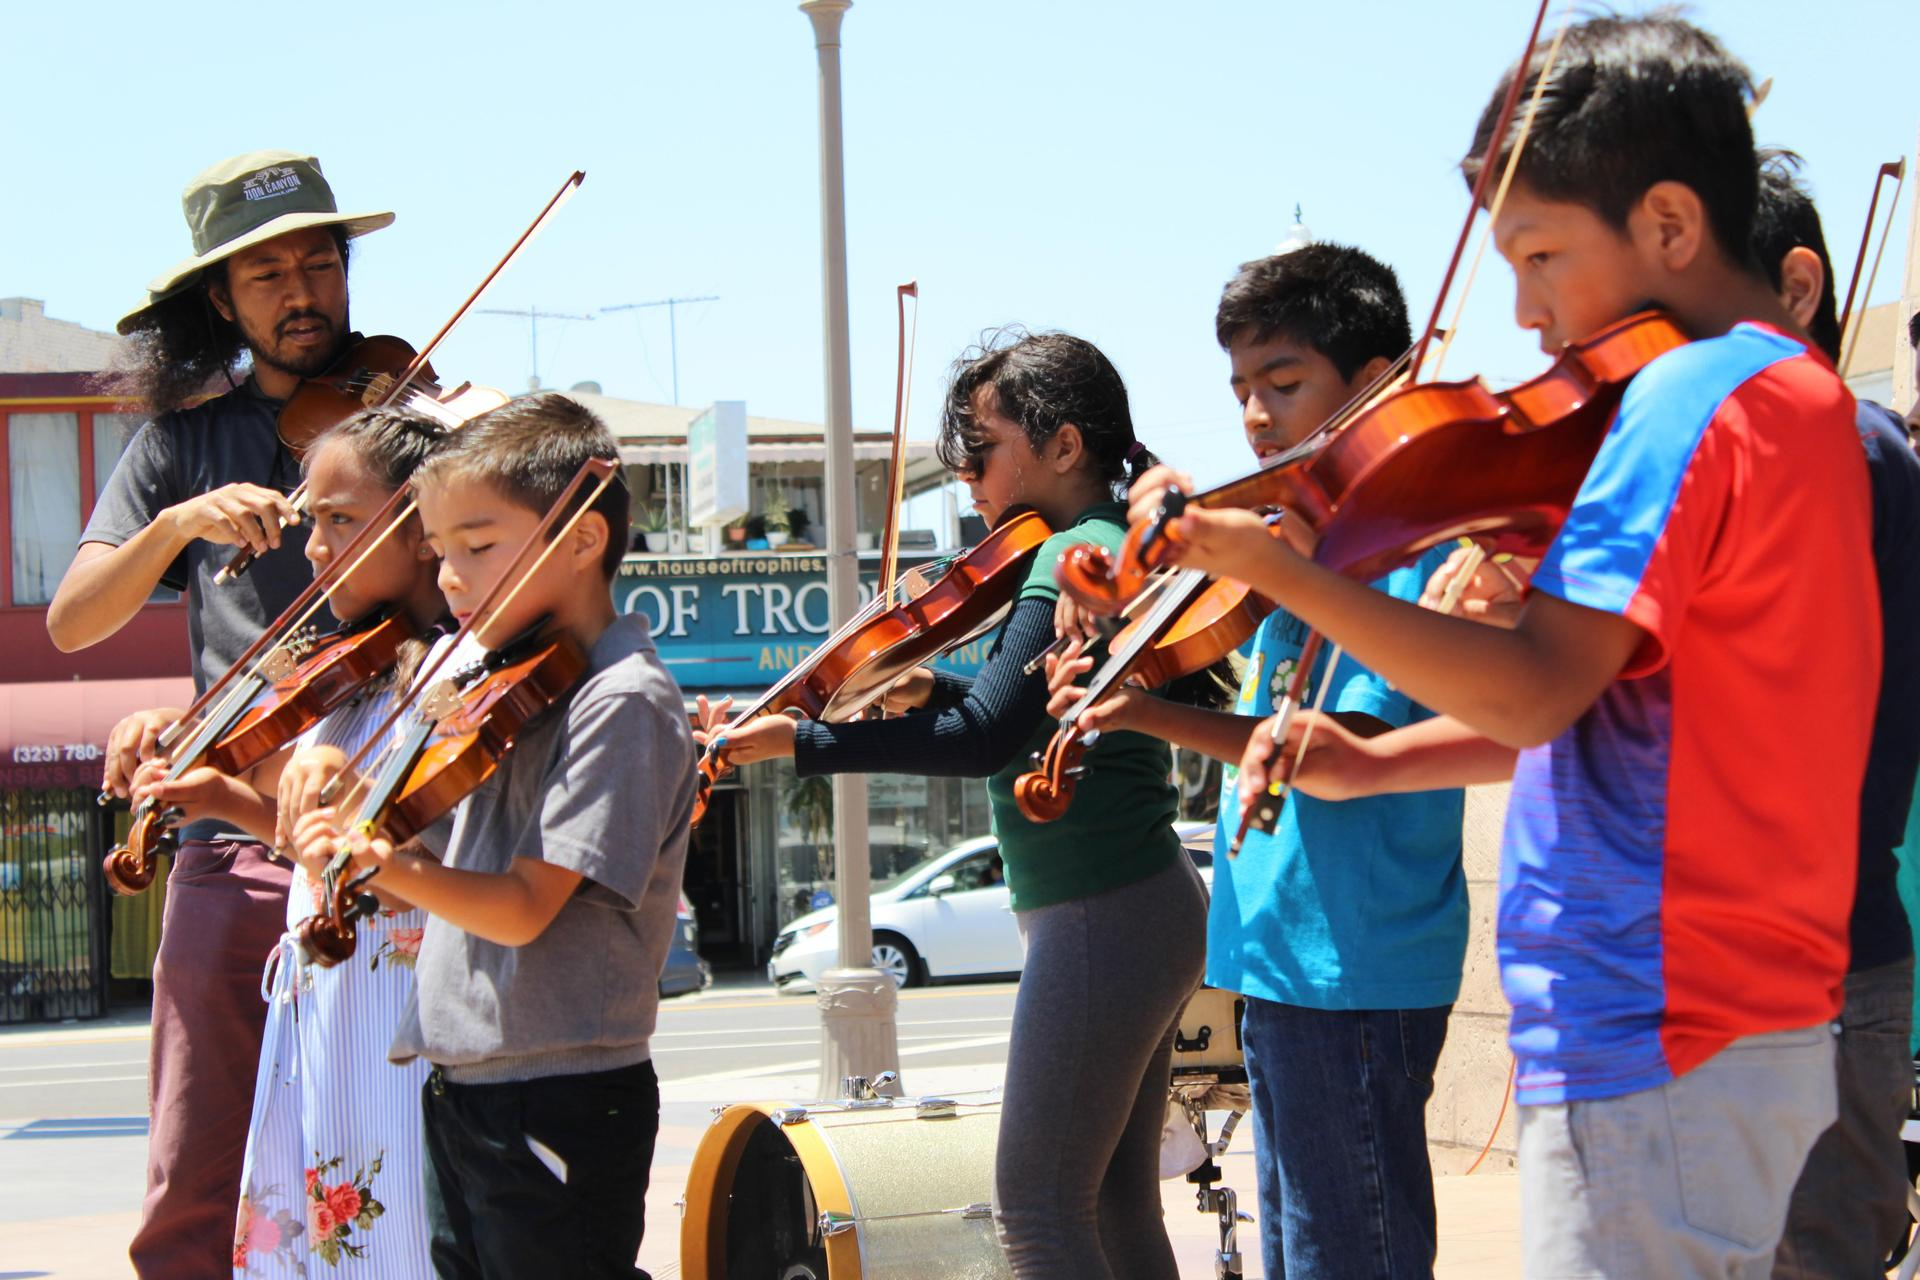 Students play violins at an outdoor festival